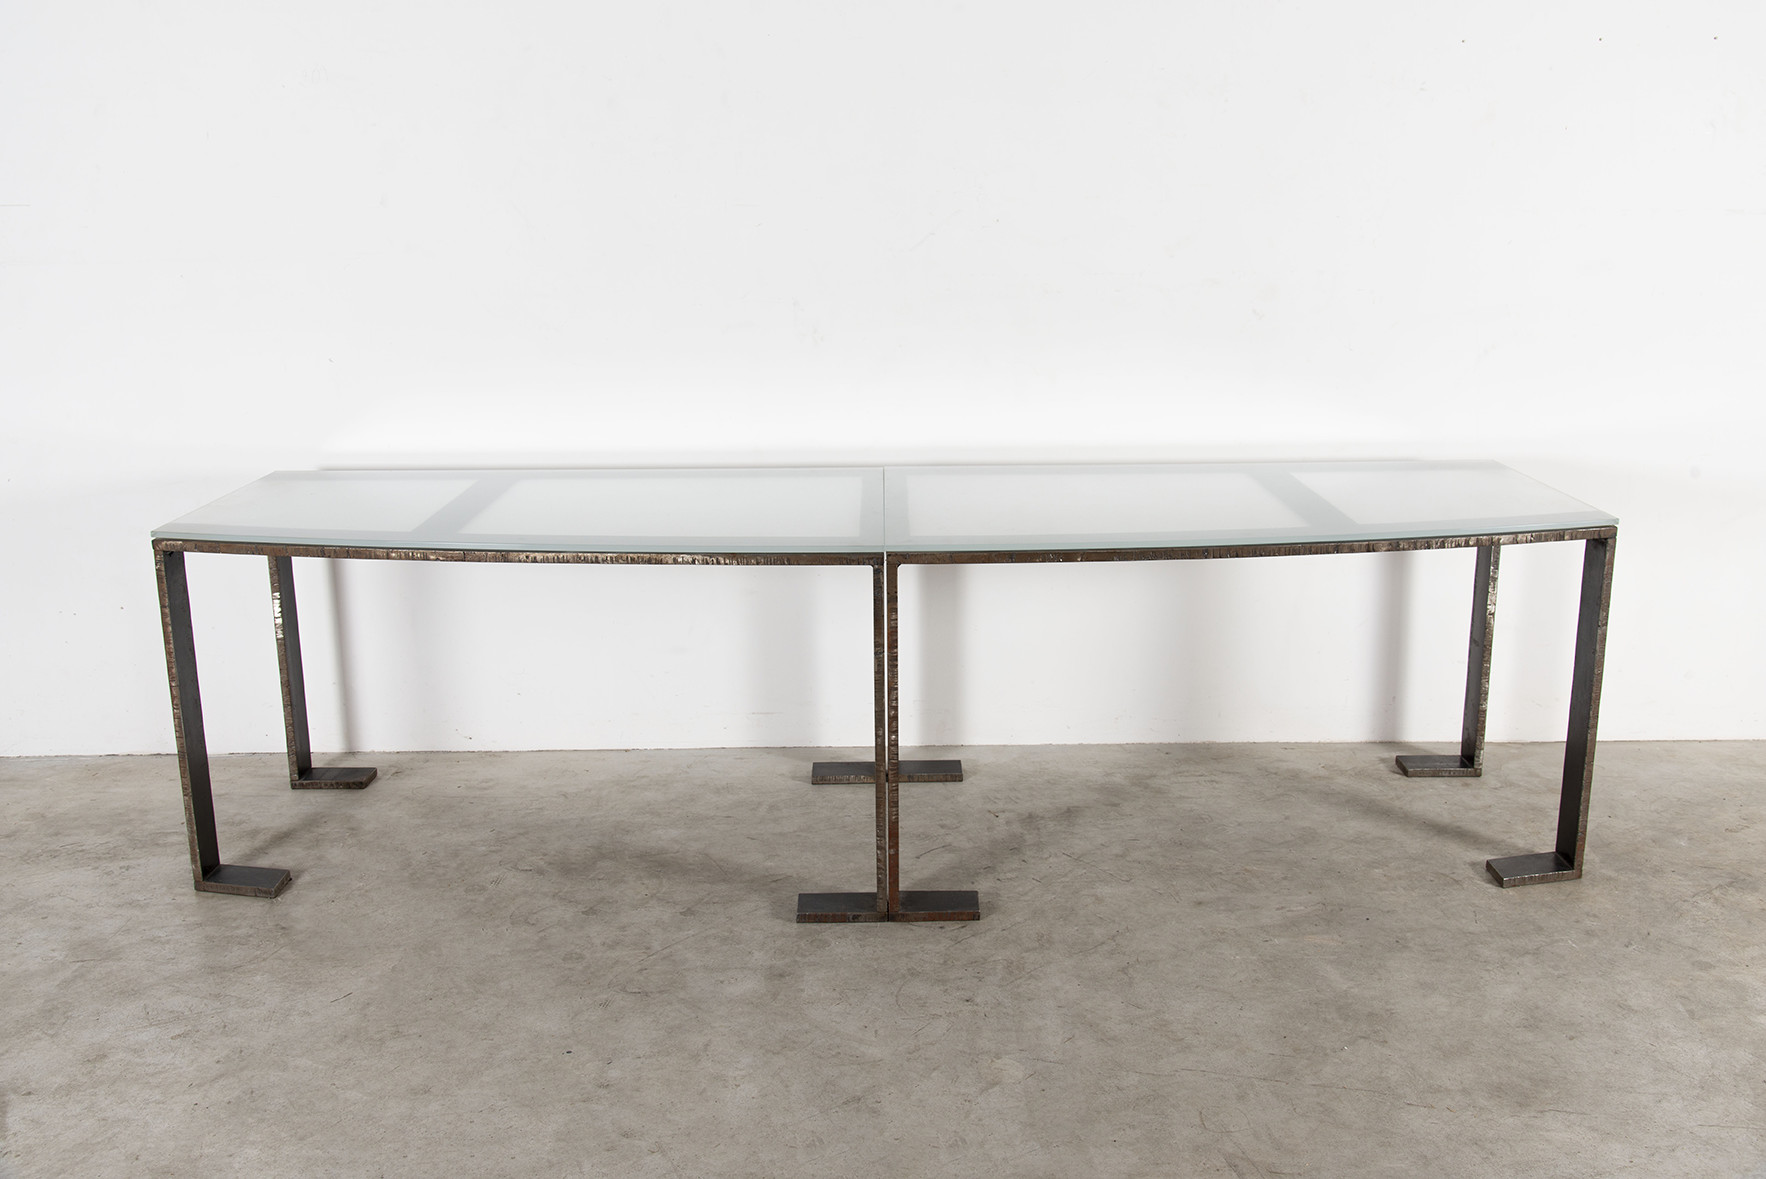 Table, 2013 / Table, 2013